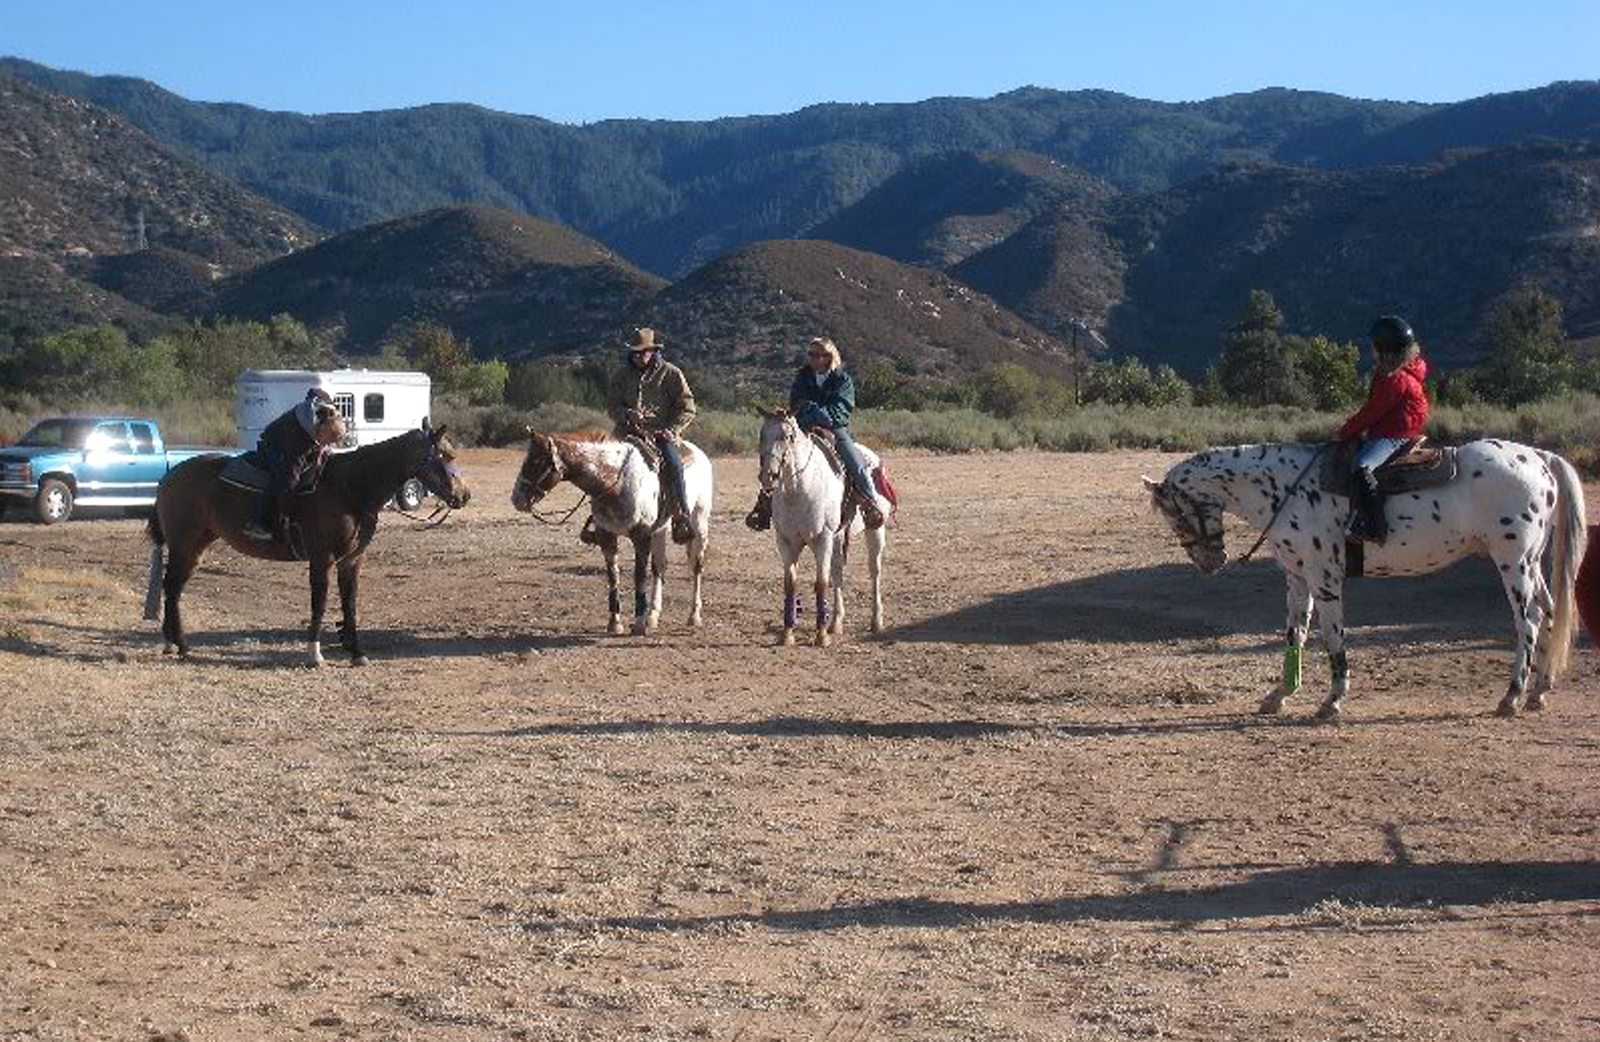 A group of people on horseback in a dirt open area of the park.